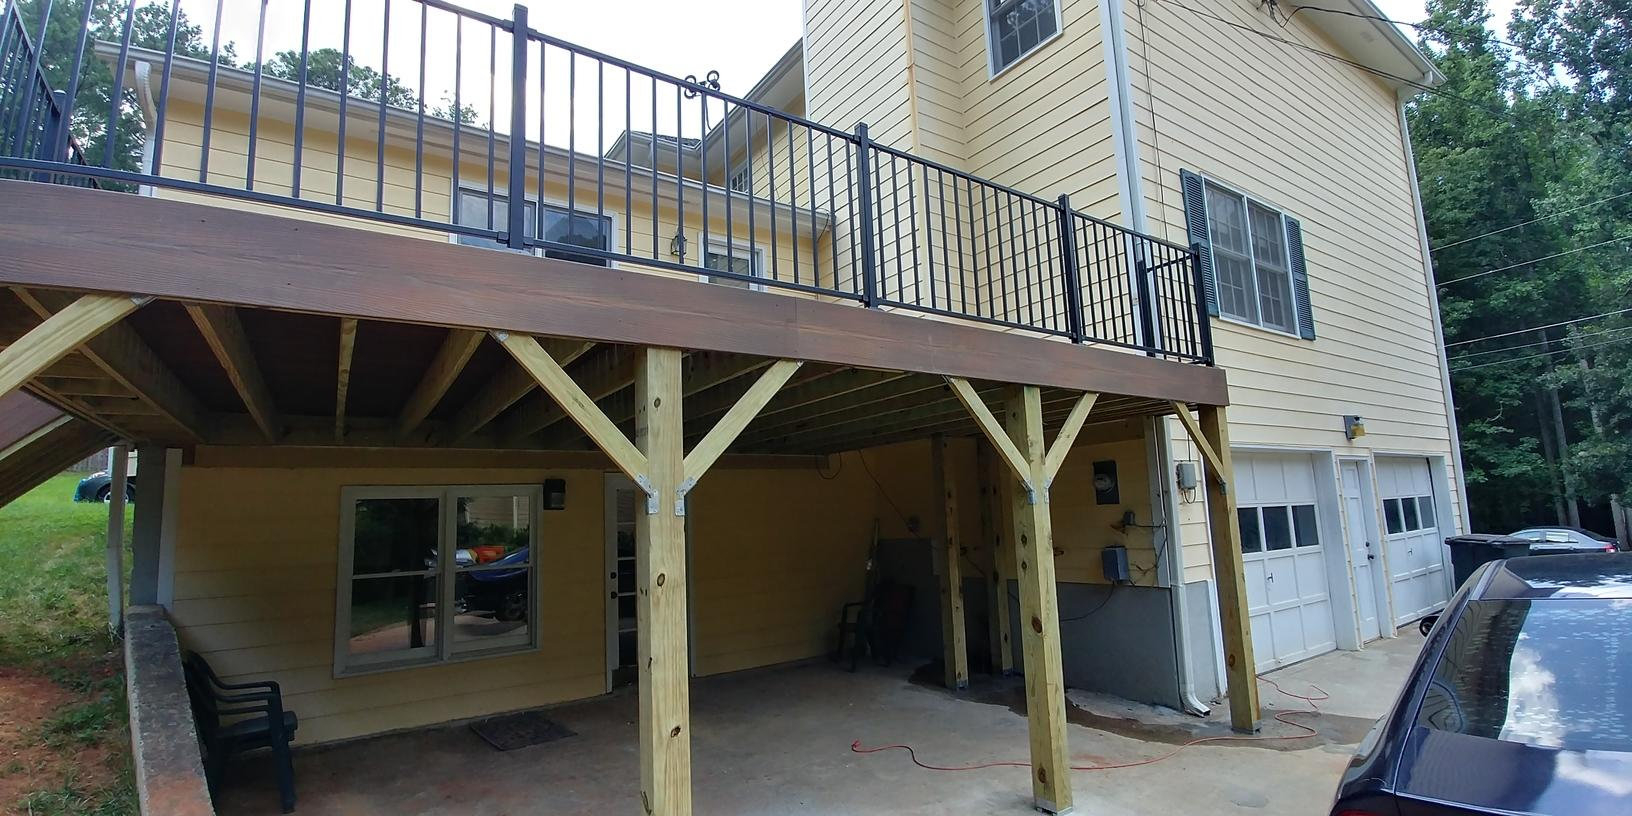 New Deck Installed for Grandmother's Birthday in Kennesaw, GA - After Photo